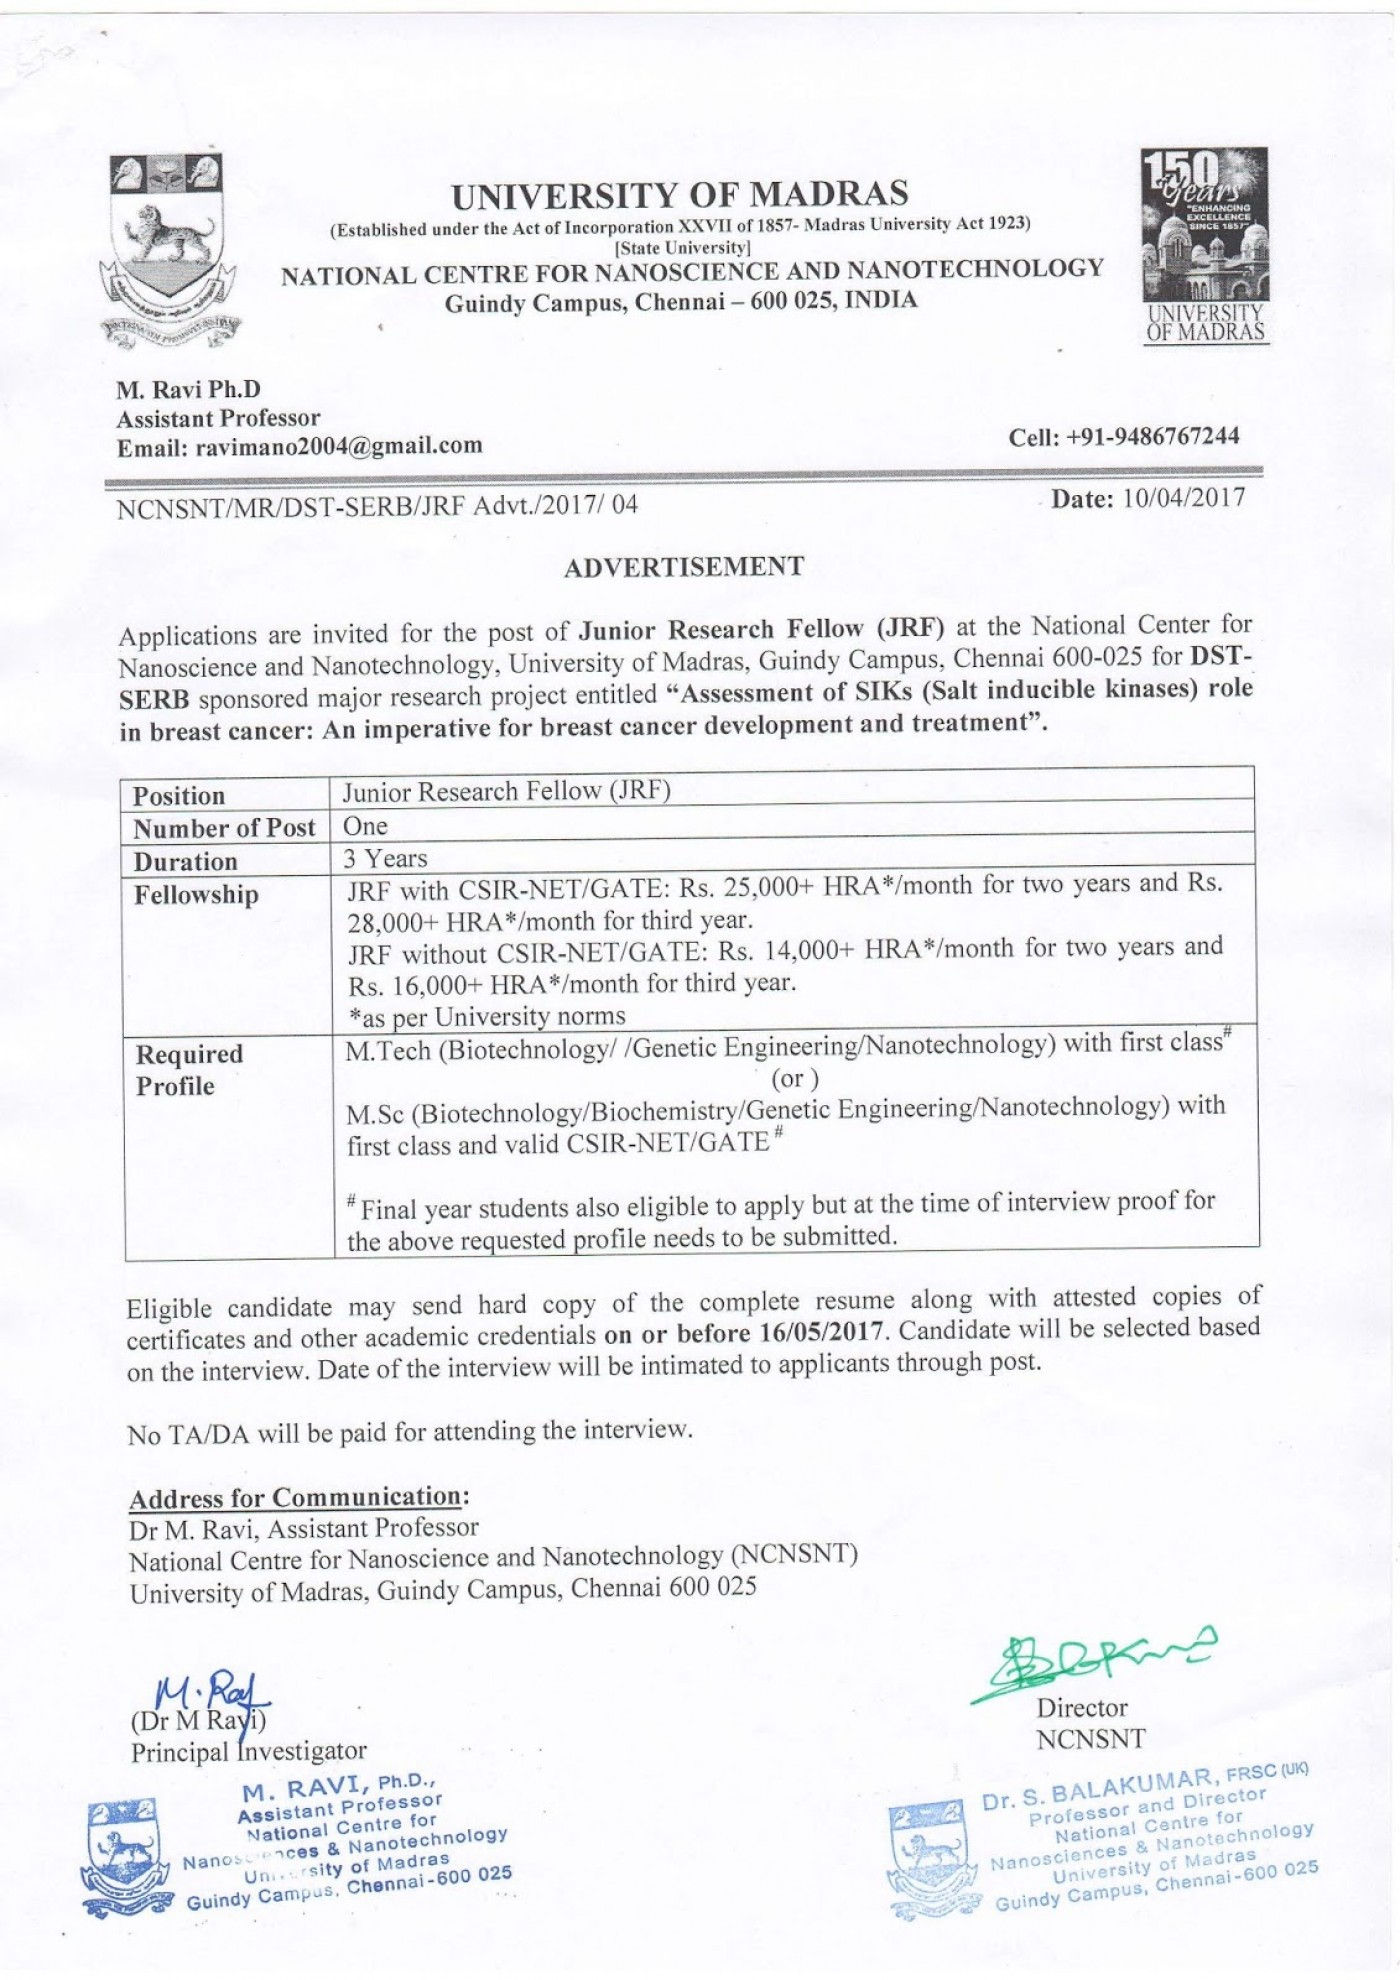 015 Breast Cancer Researchs Pdf Jrf2badverticement 20170419092957 86571 Awful Research Papers 1400